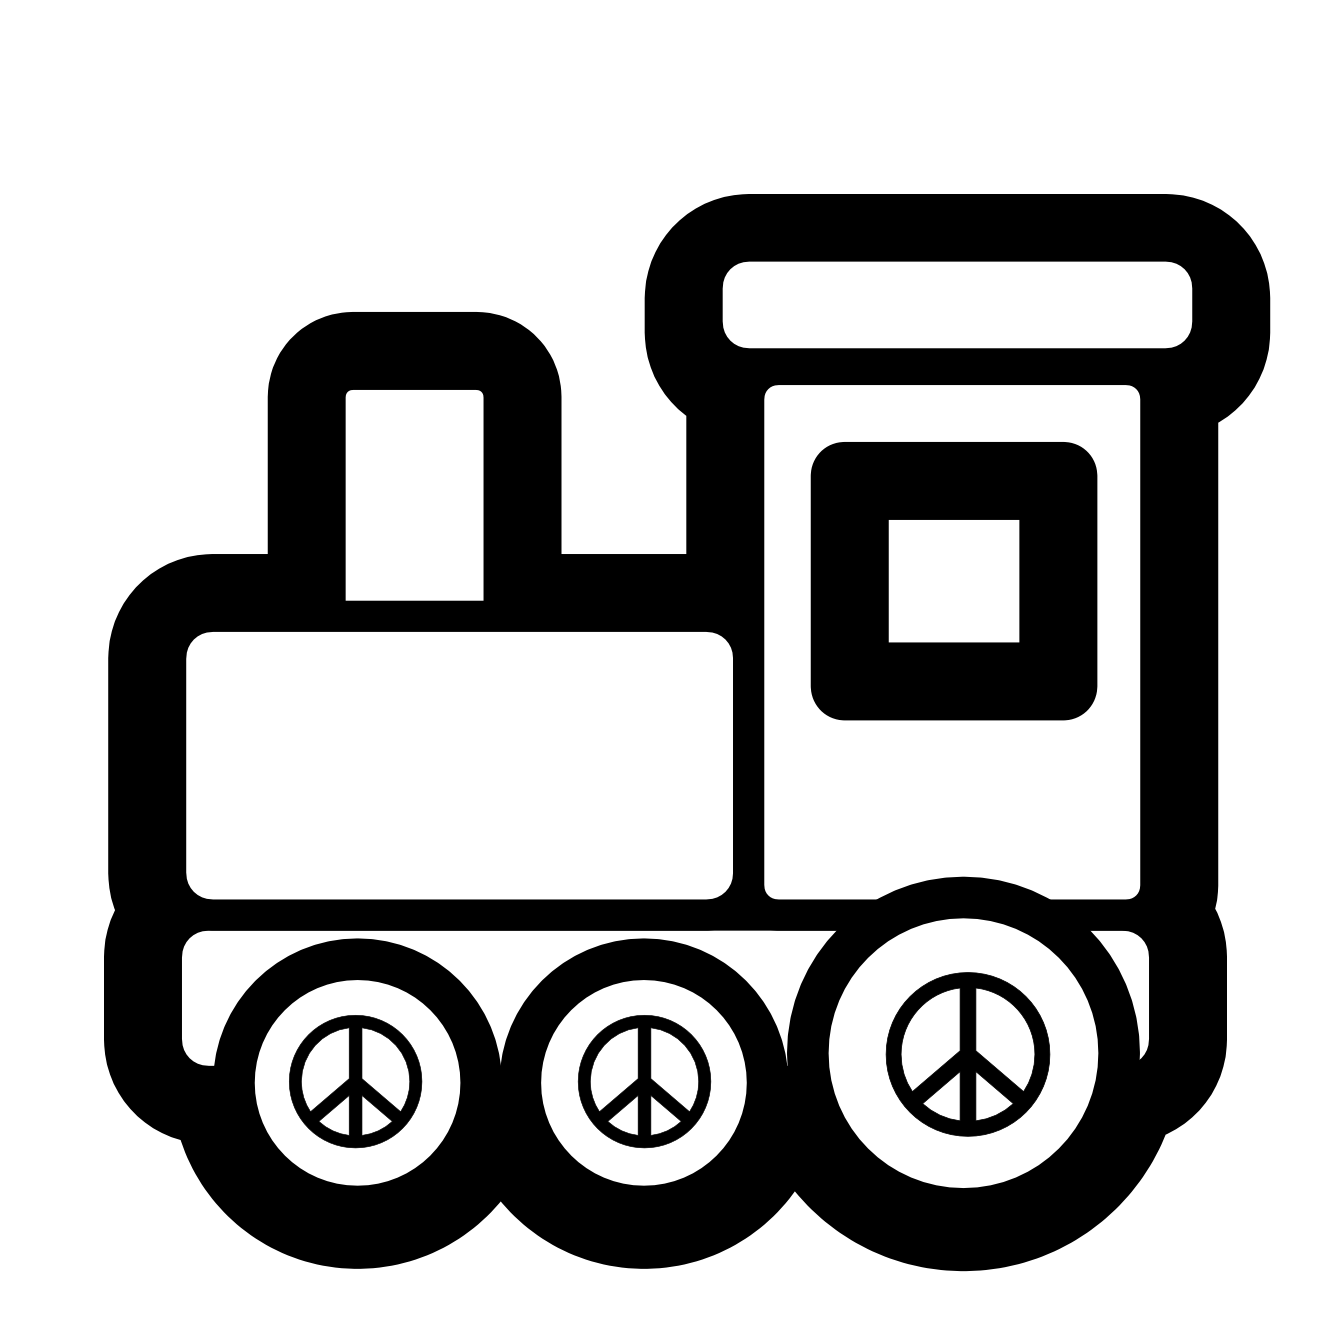 banner freeuse Train panda free images. Transportation clipart black and white